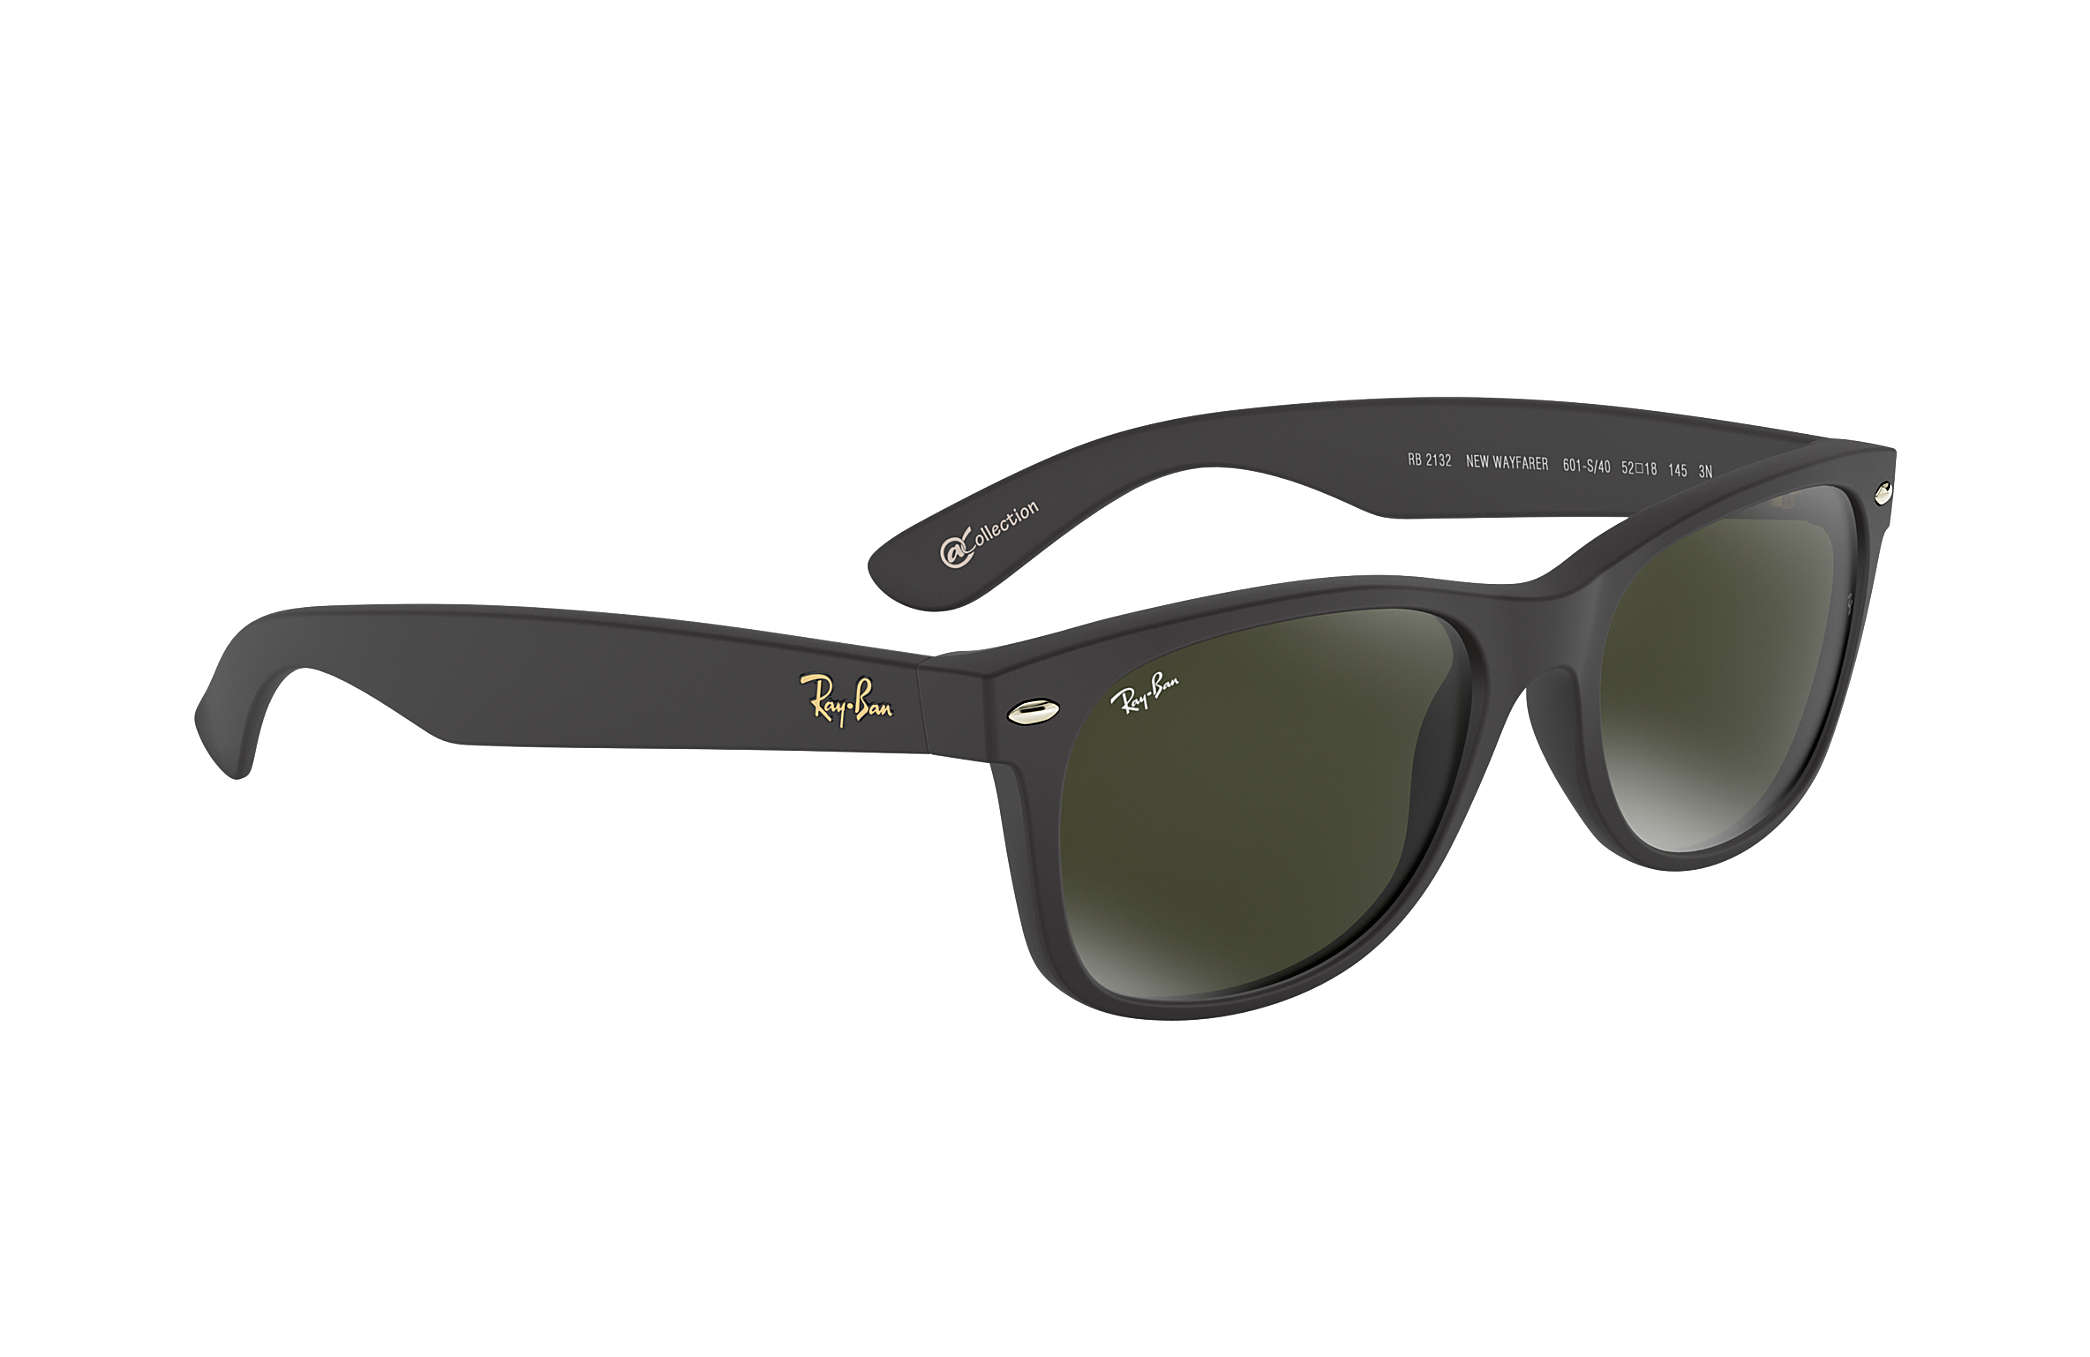 Ray-Ban 0RB2132-NEW WAYFARER @Collection Black SUN